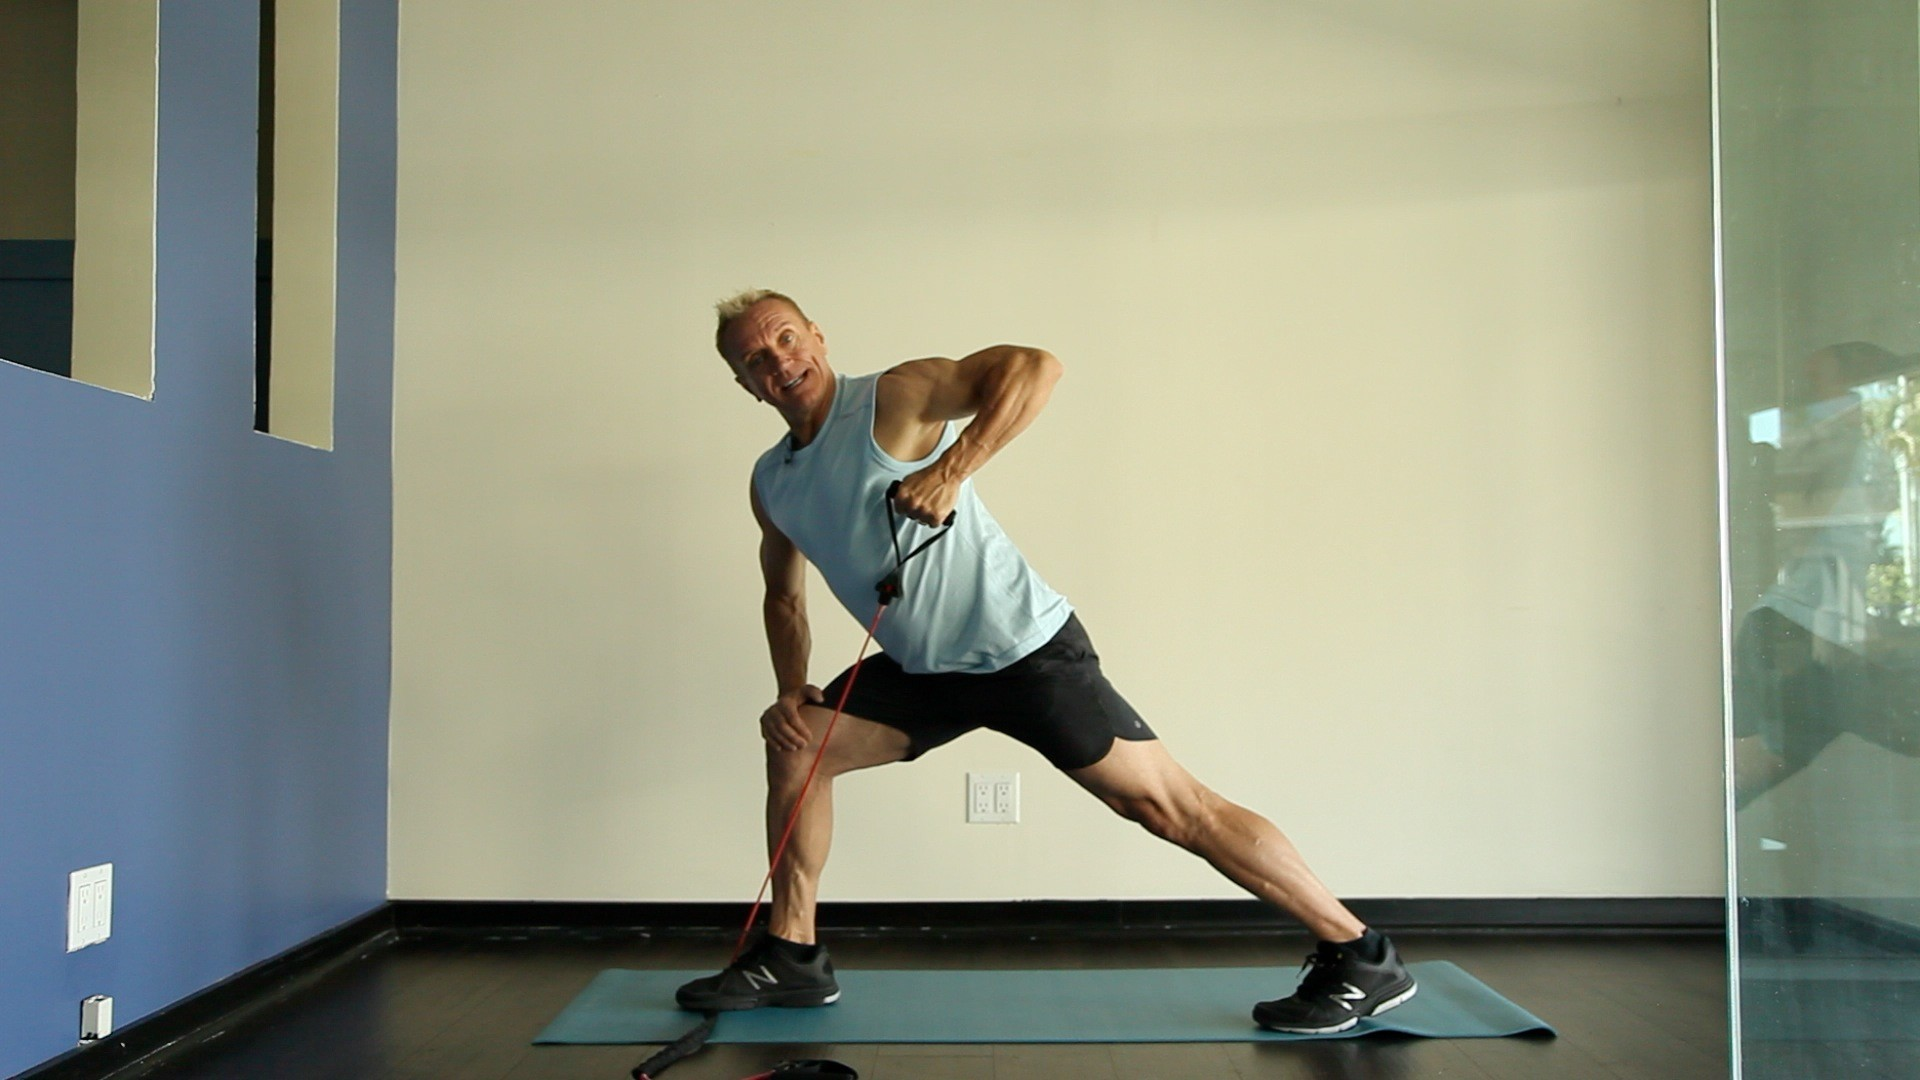 Try This  The Lawn Mower Exercise